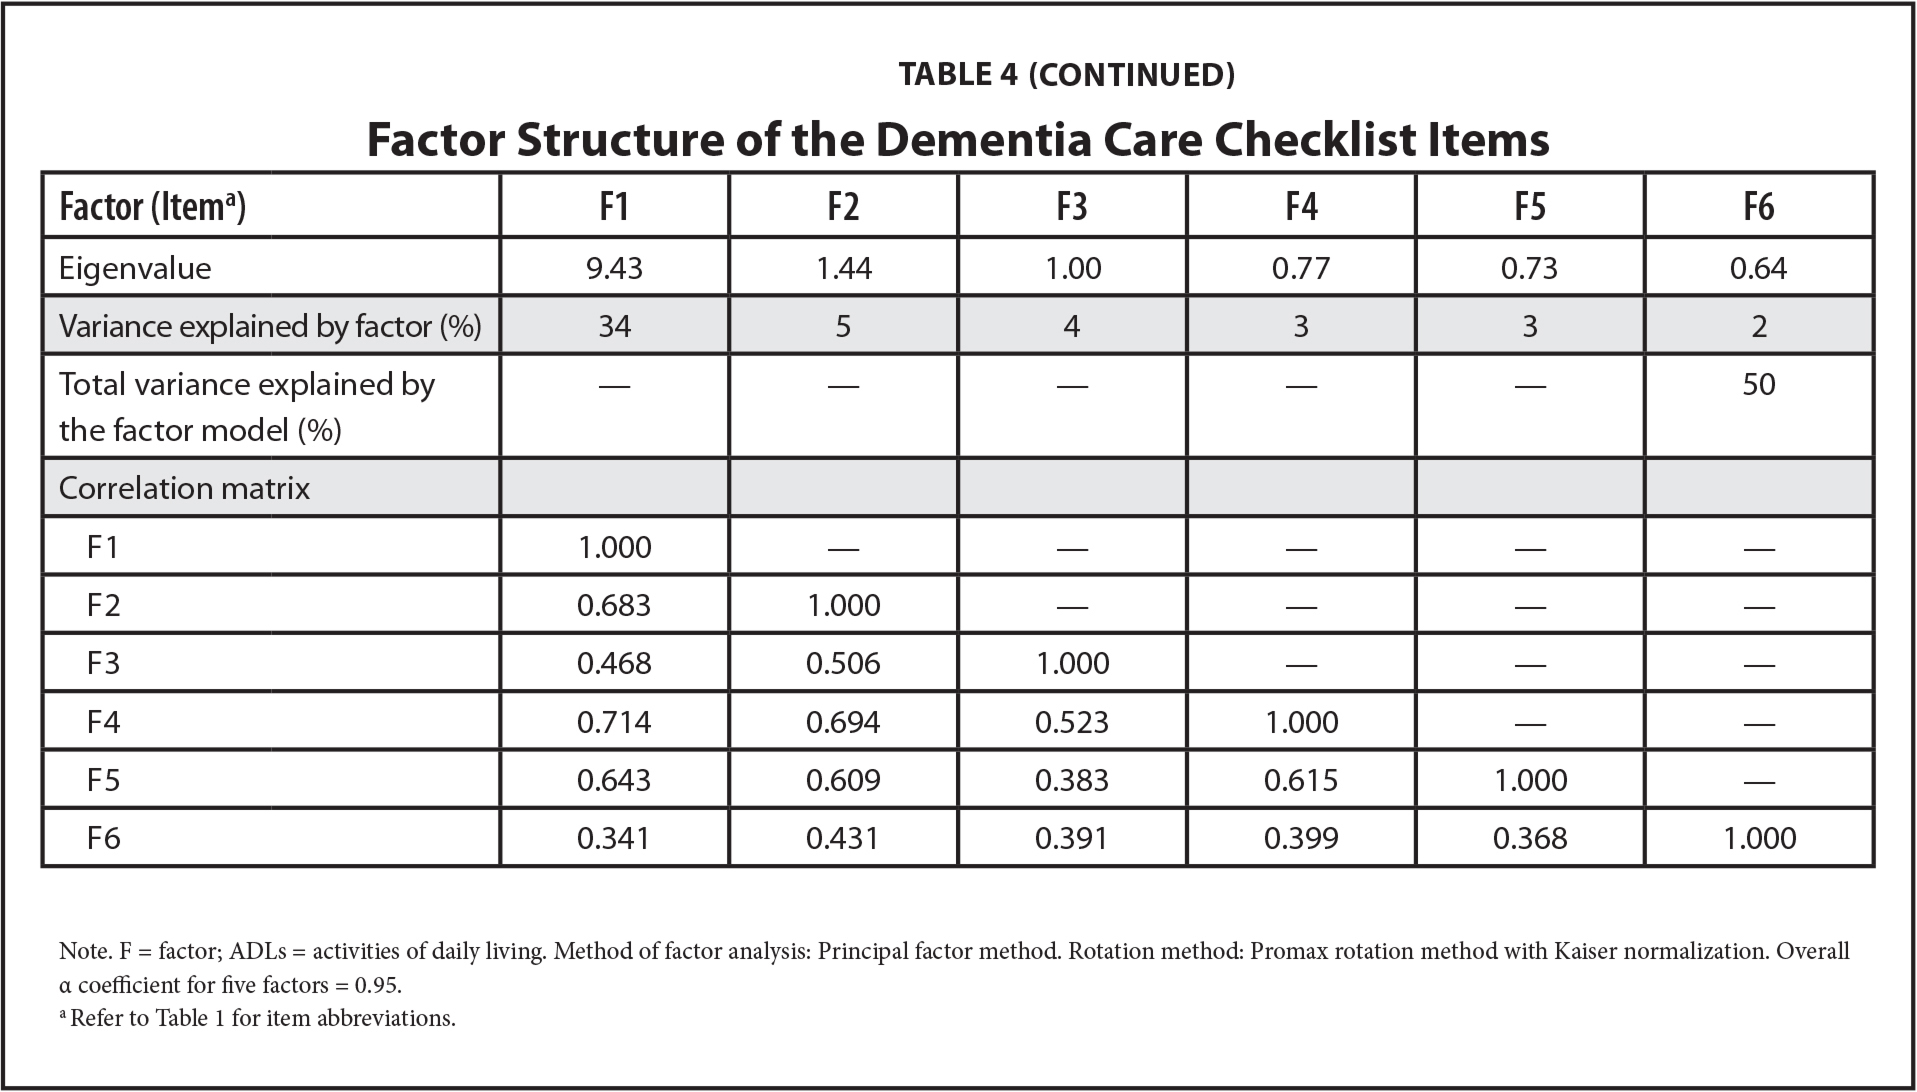 Factor Structure of the Dementia Care Checklist Items